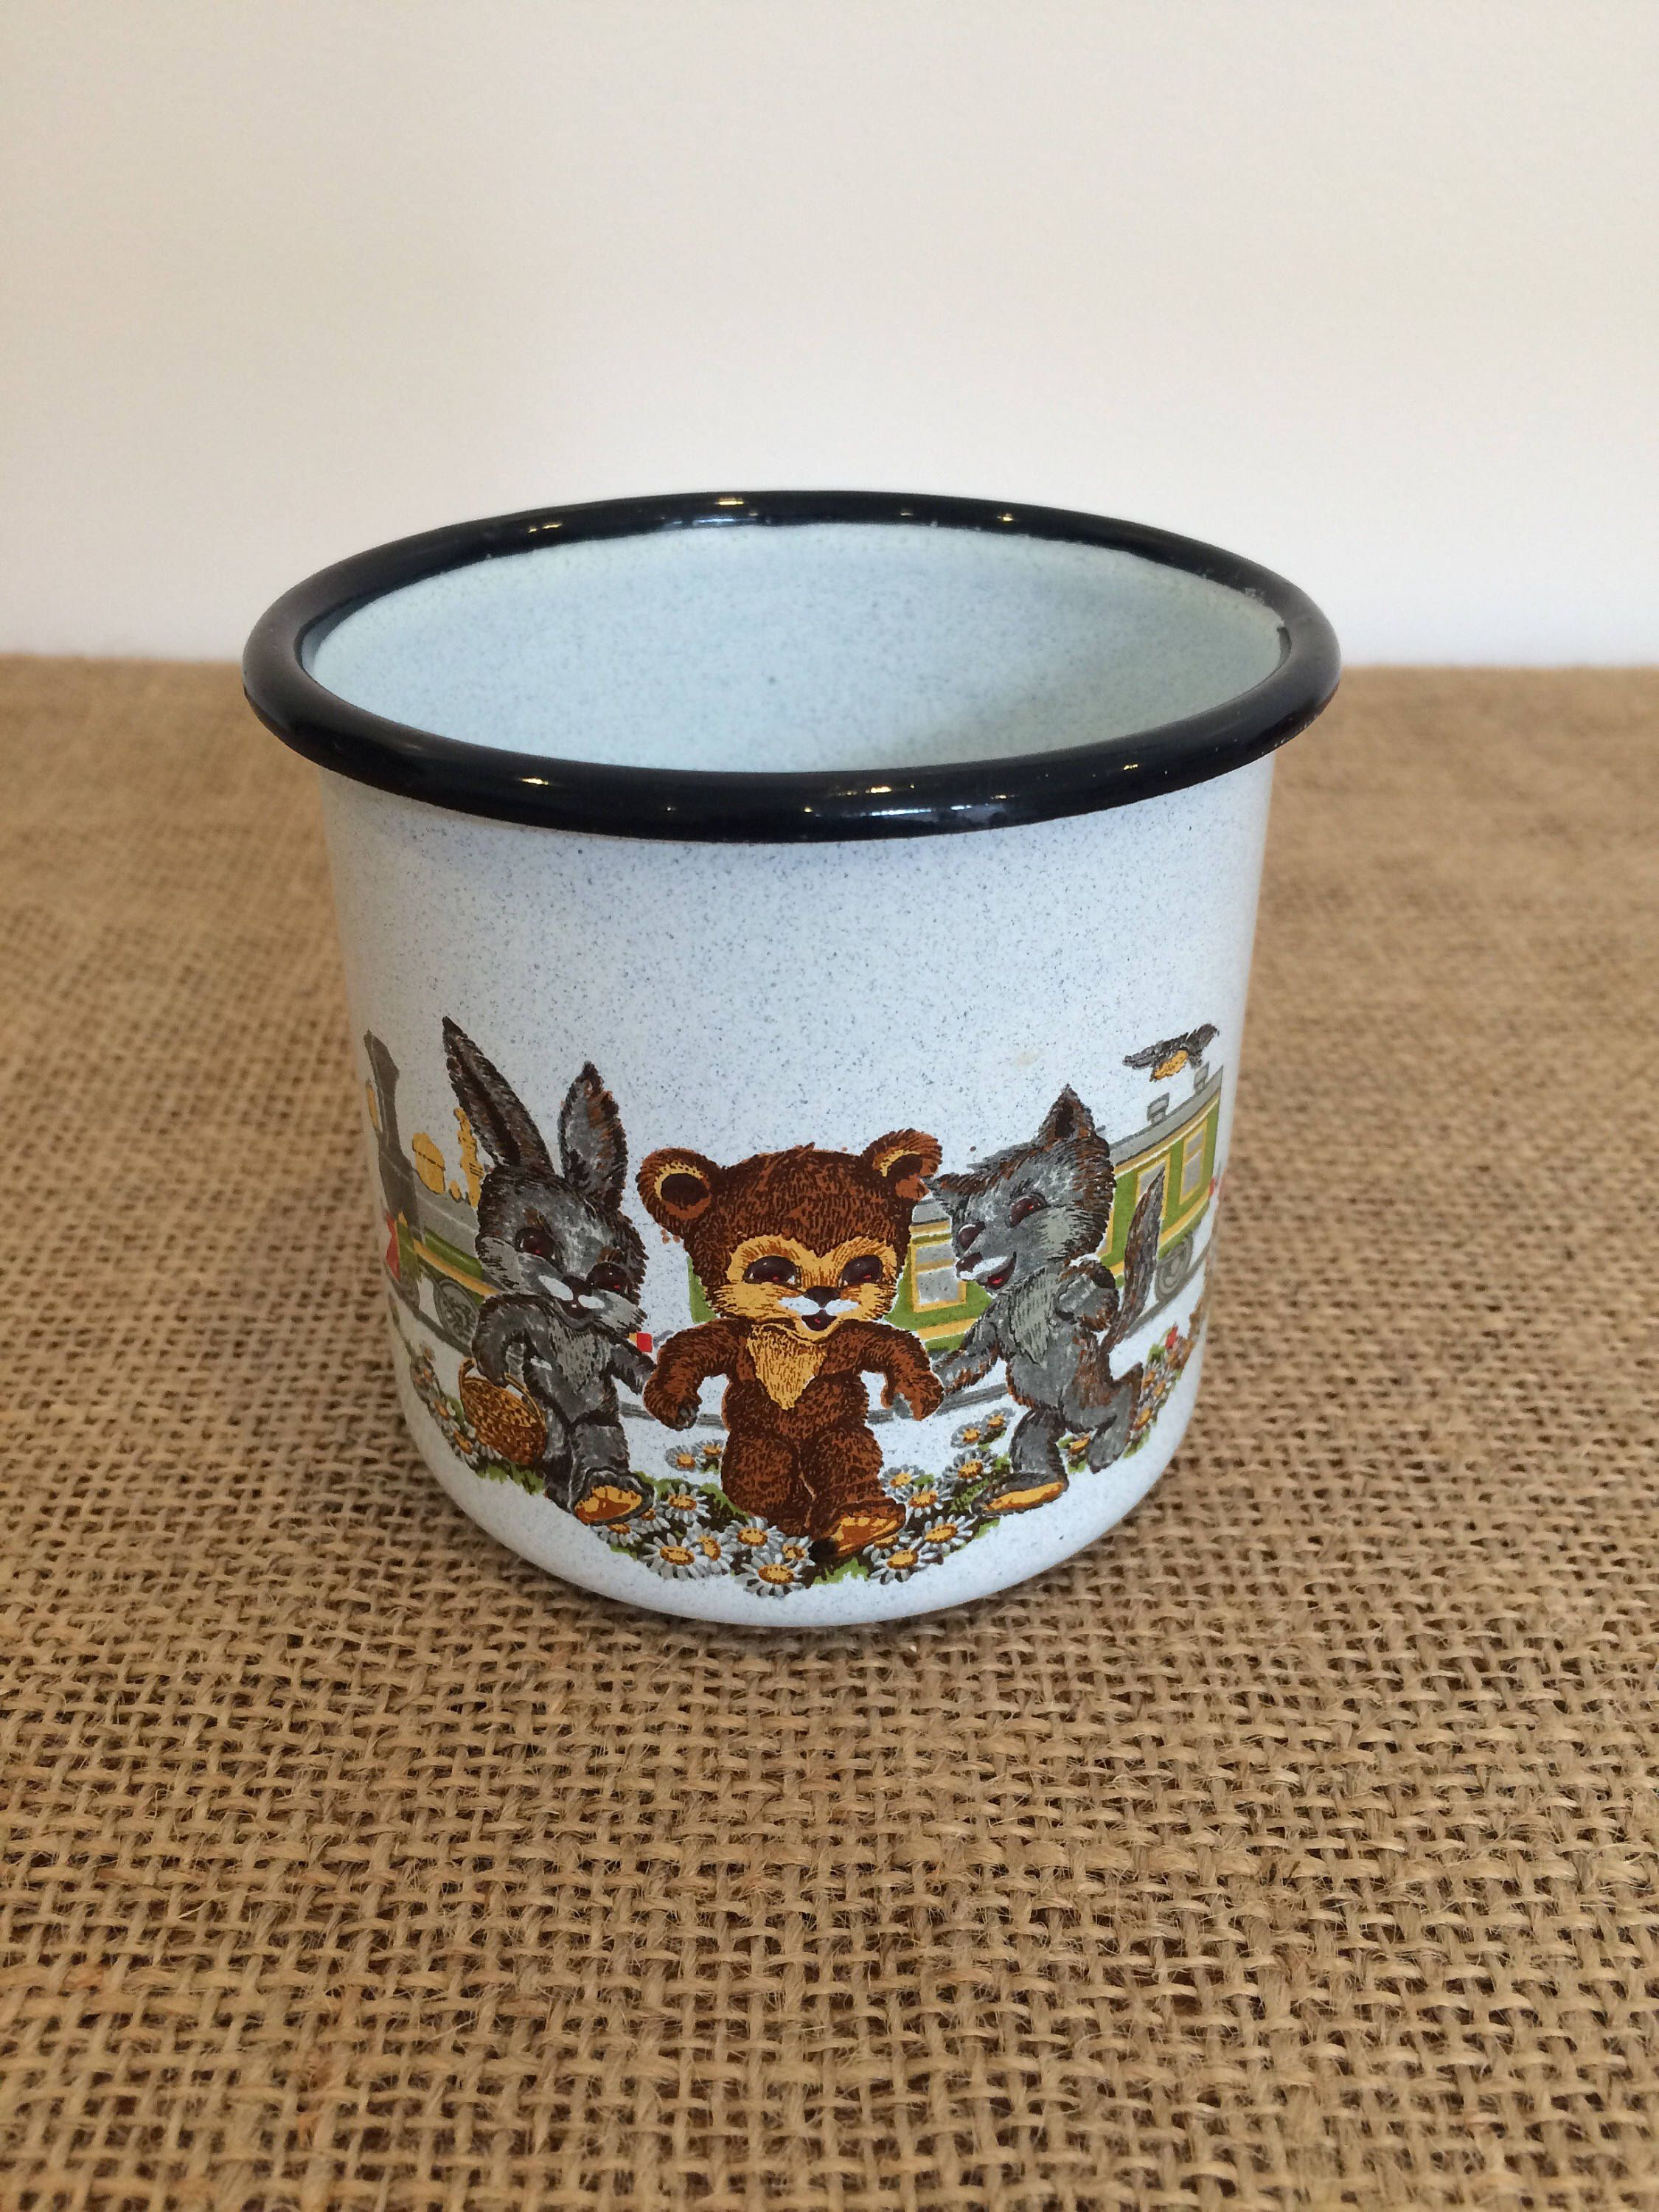 Vintage French Enamel Cup With Kitsch Bear And Rabbit Design